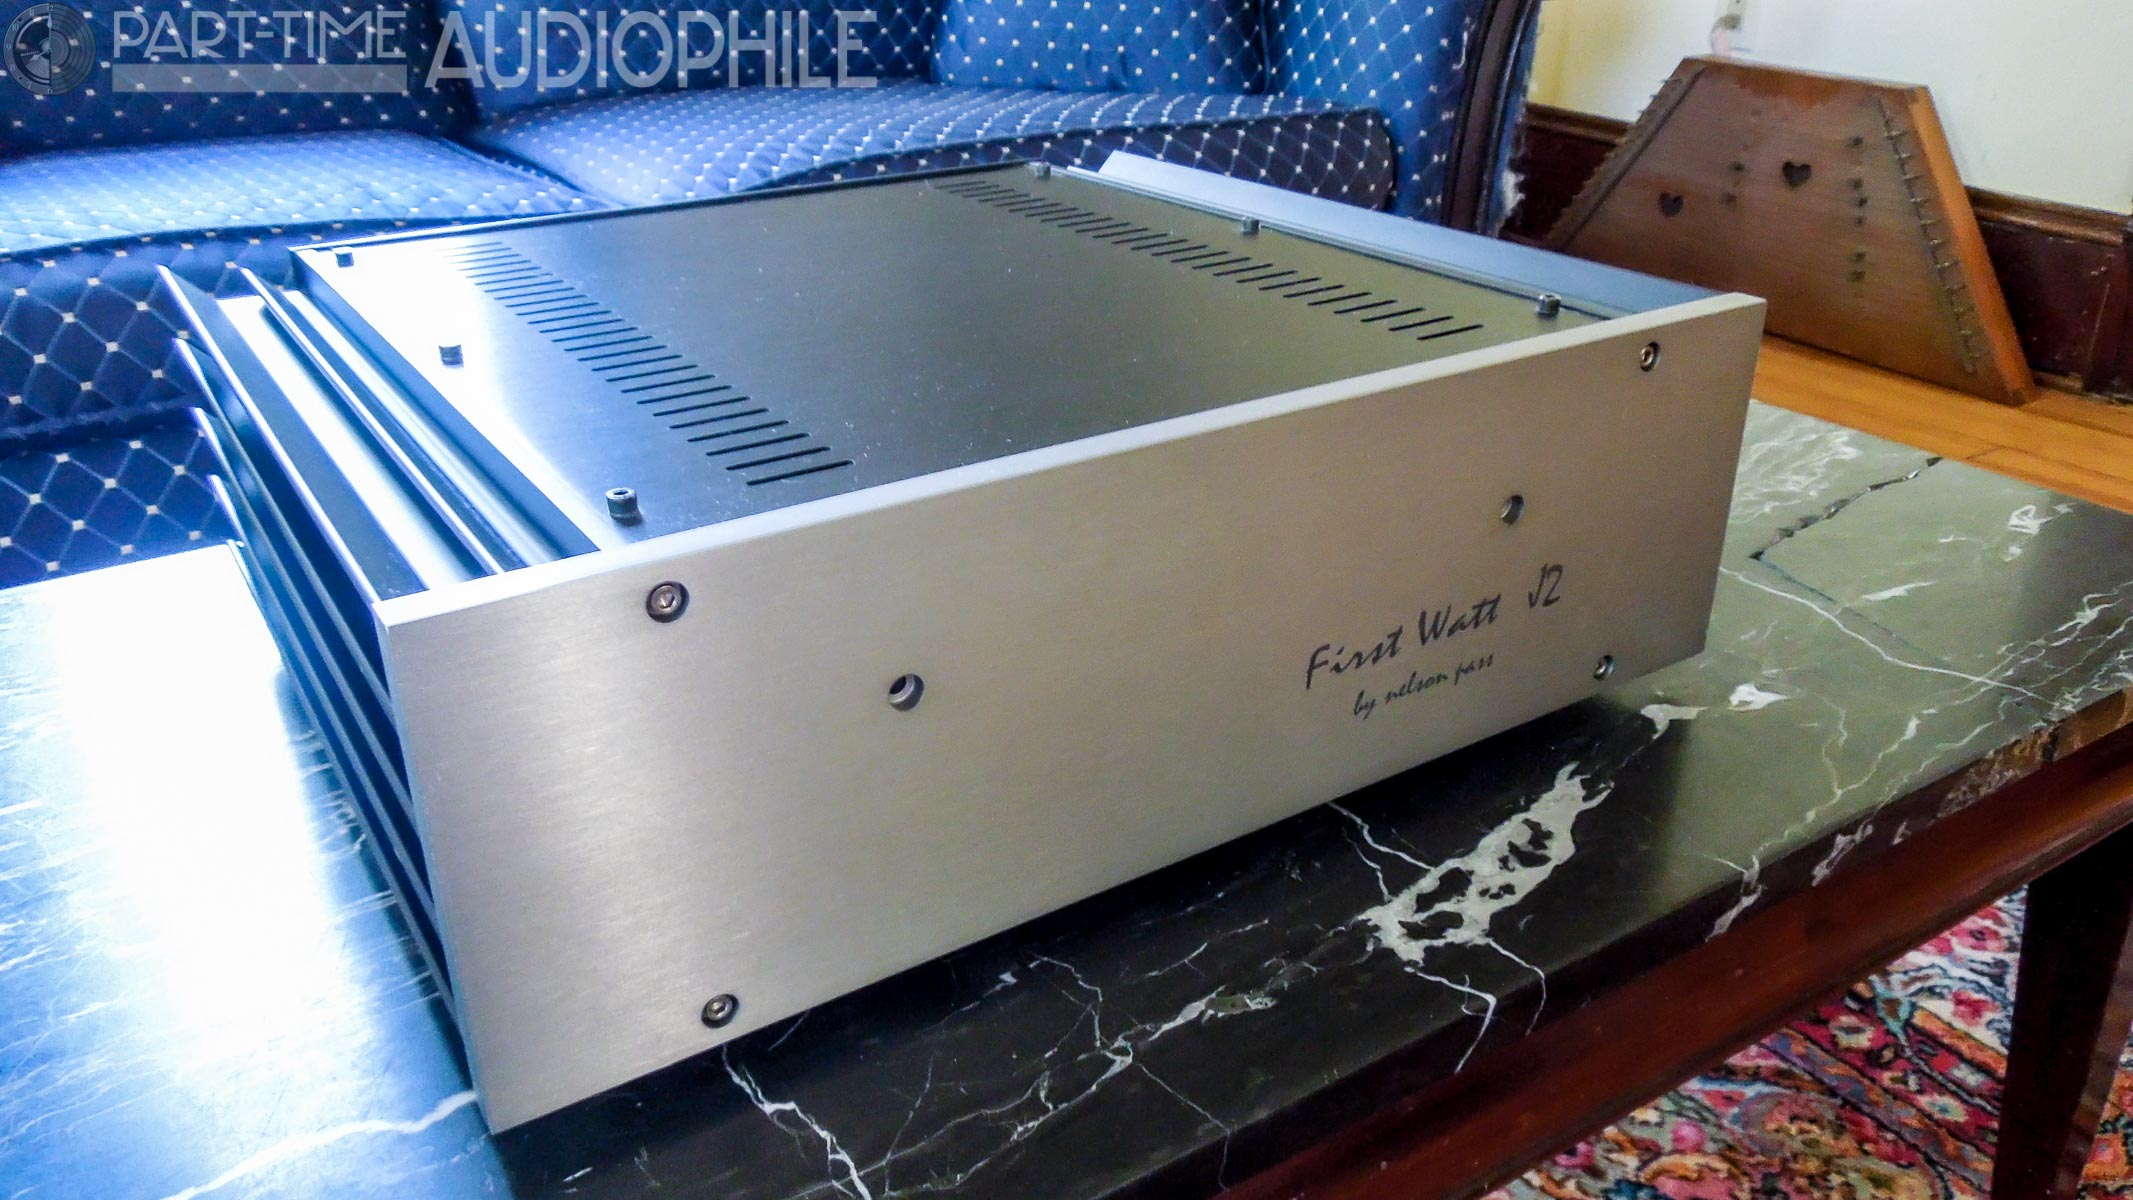 Review: J2, SIT-1, and F7 First Watt amplifiers by Nelson